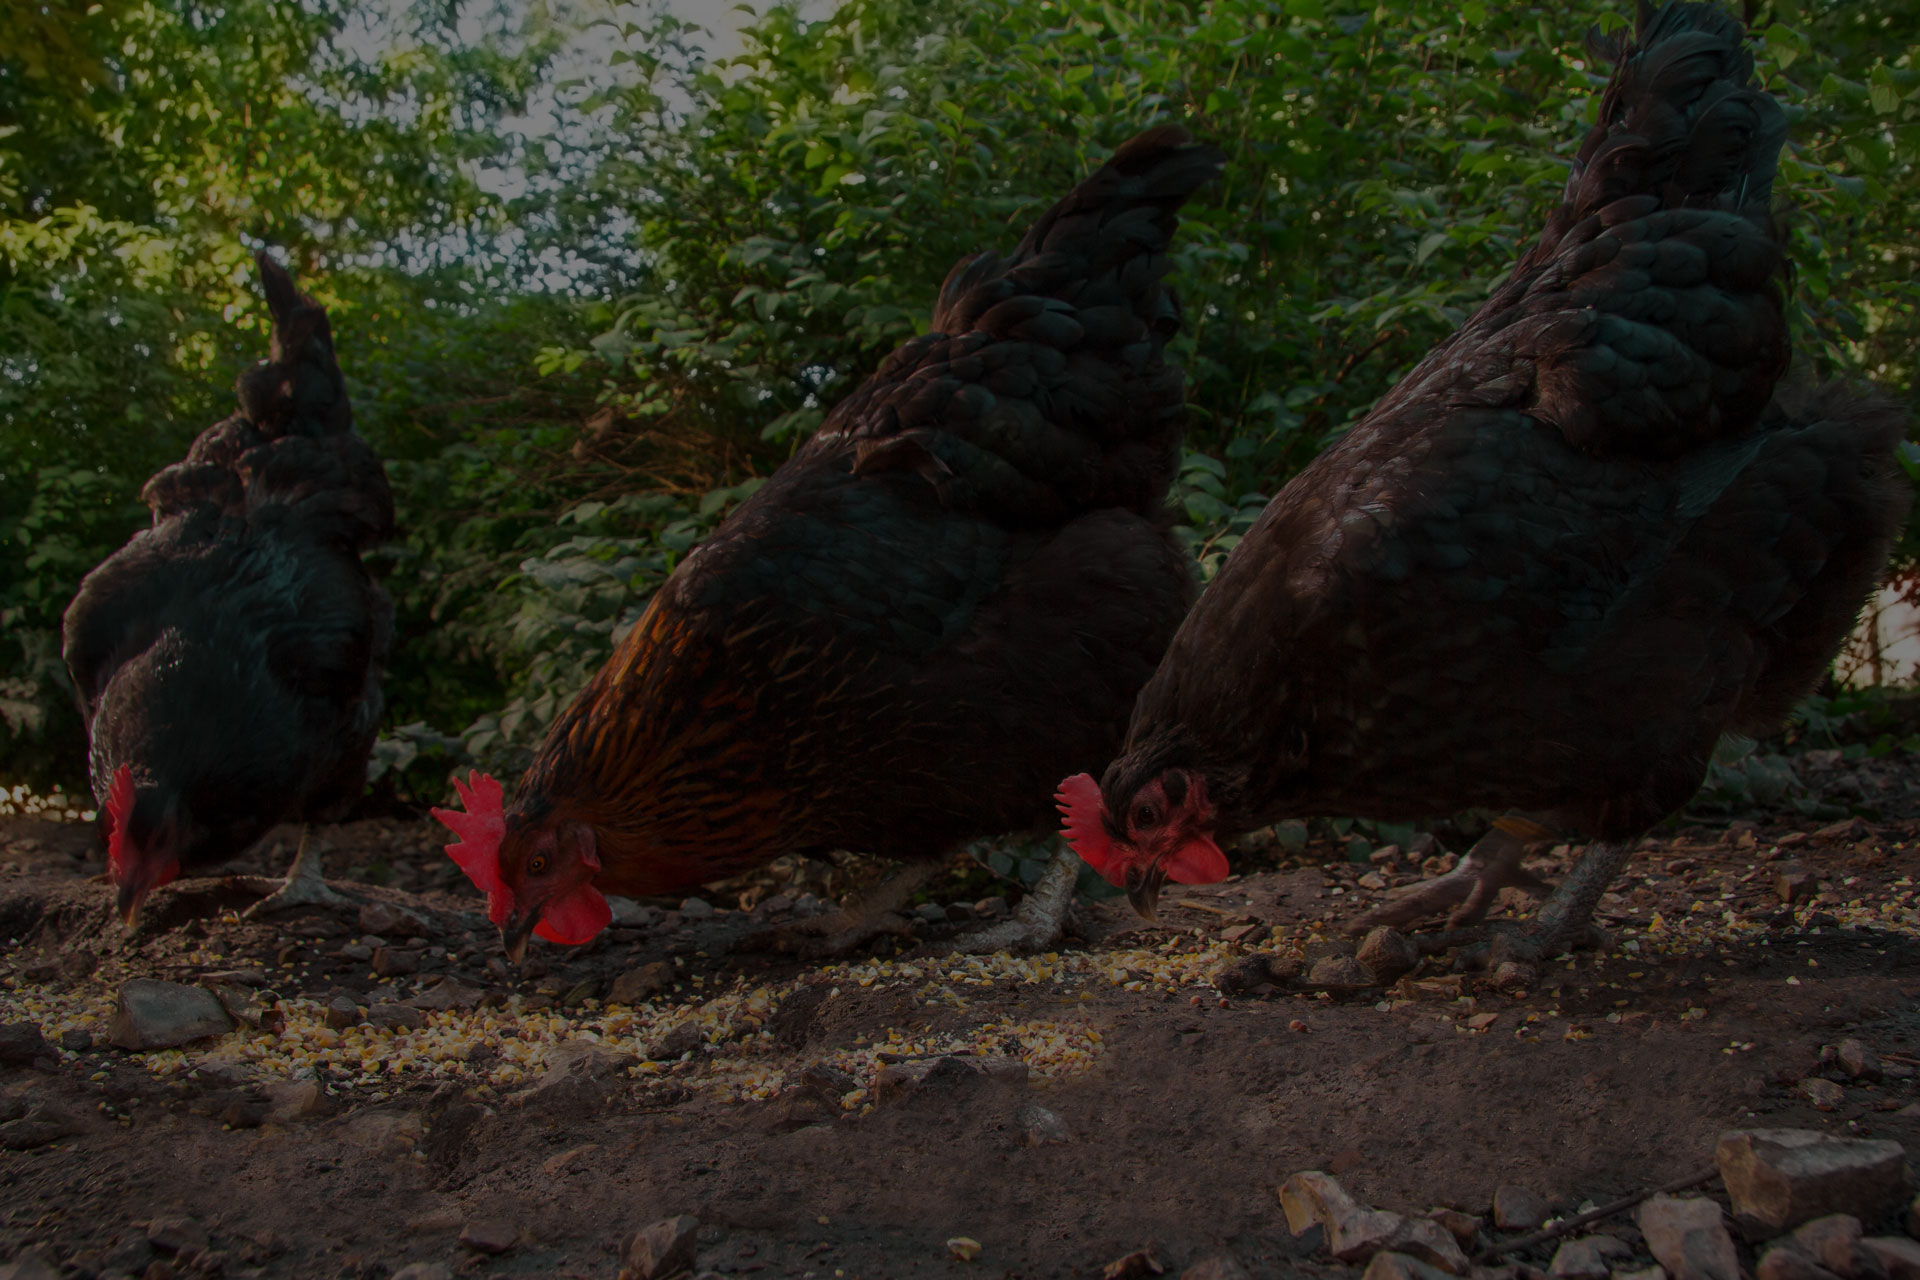 Three Black Australorp hens scratch for food in the barnyard